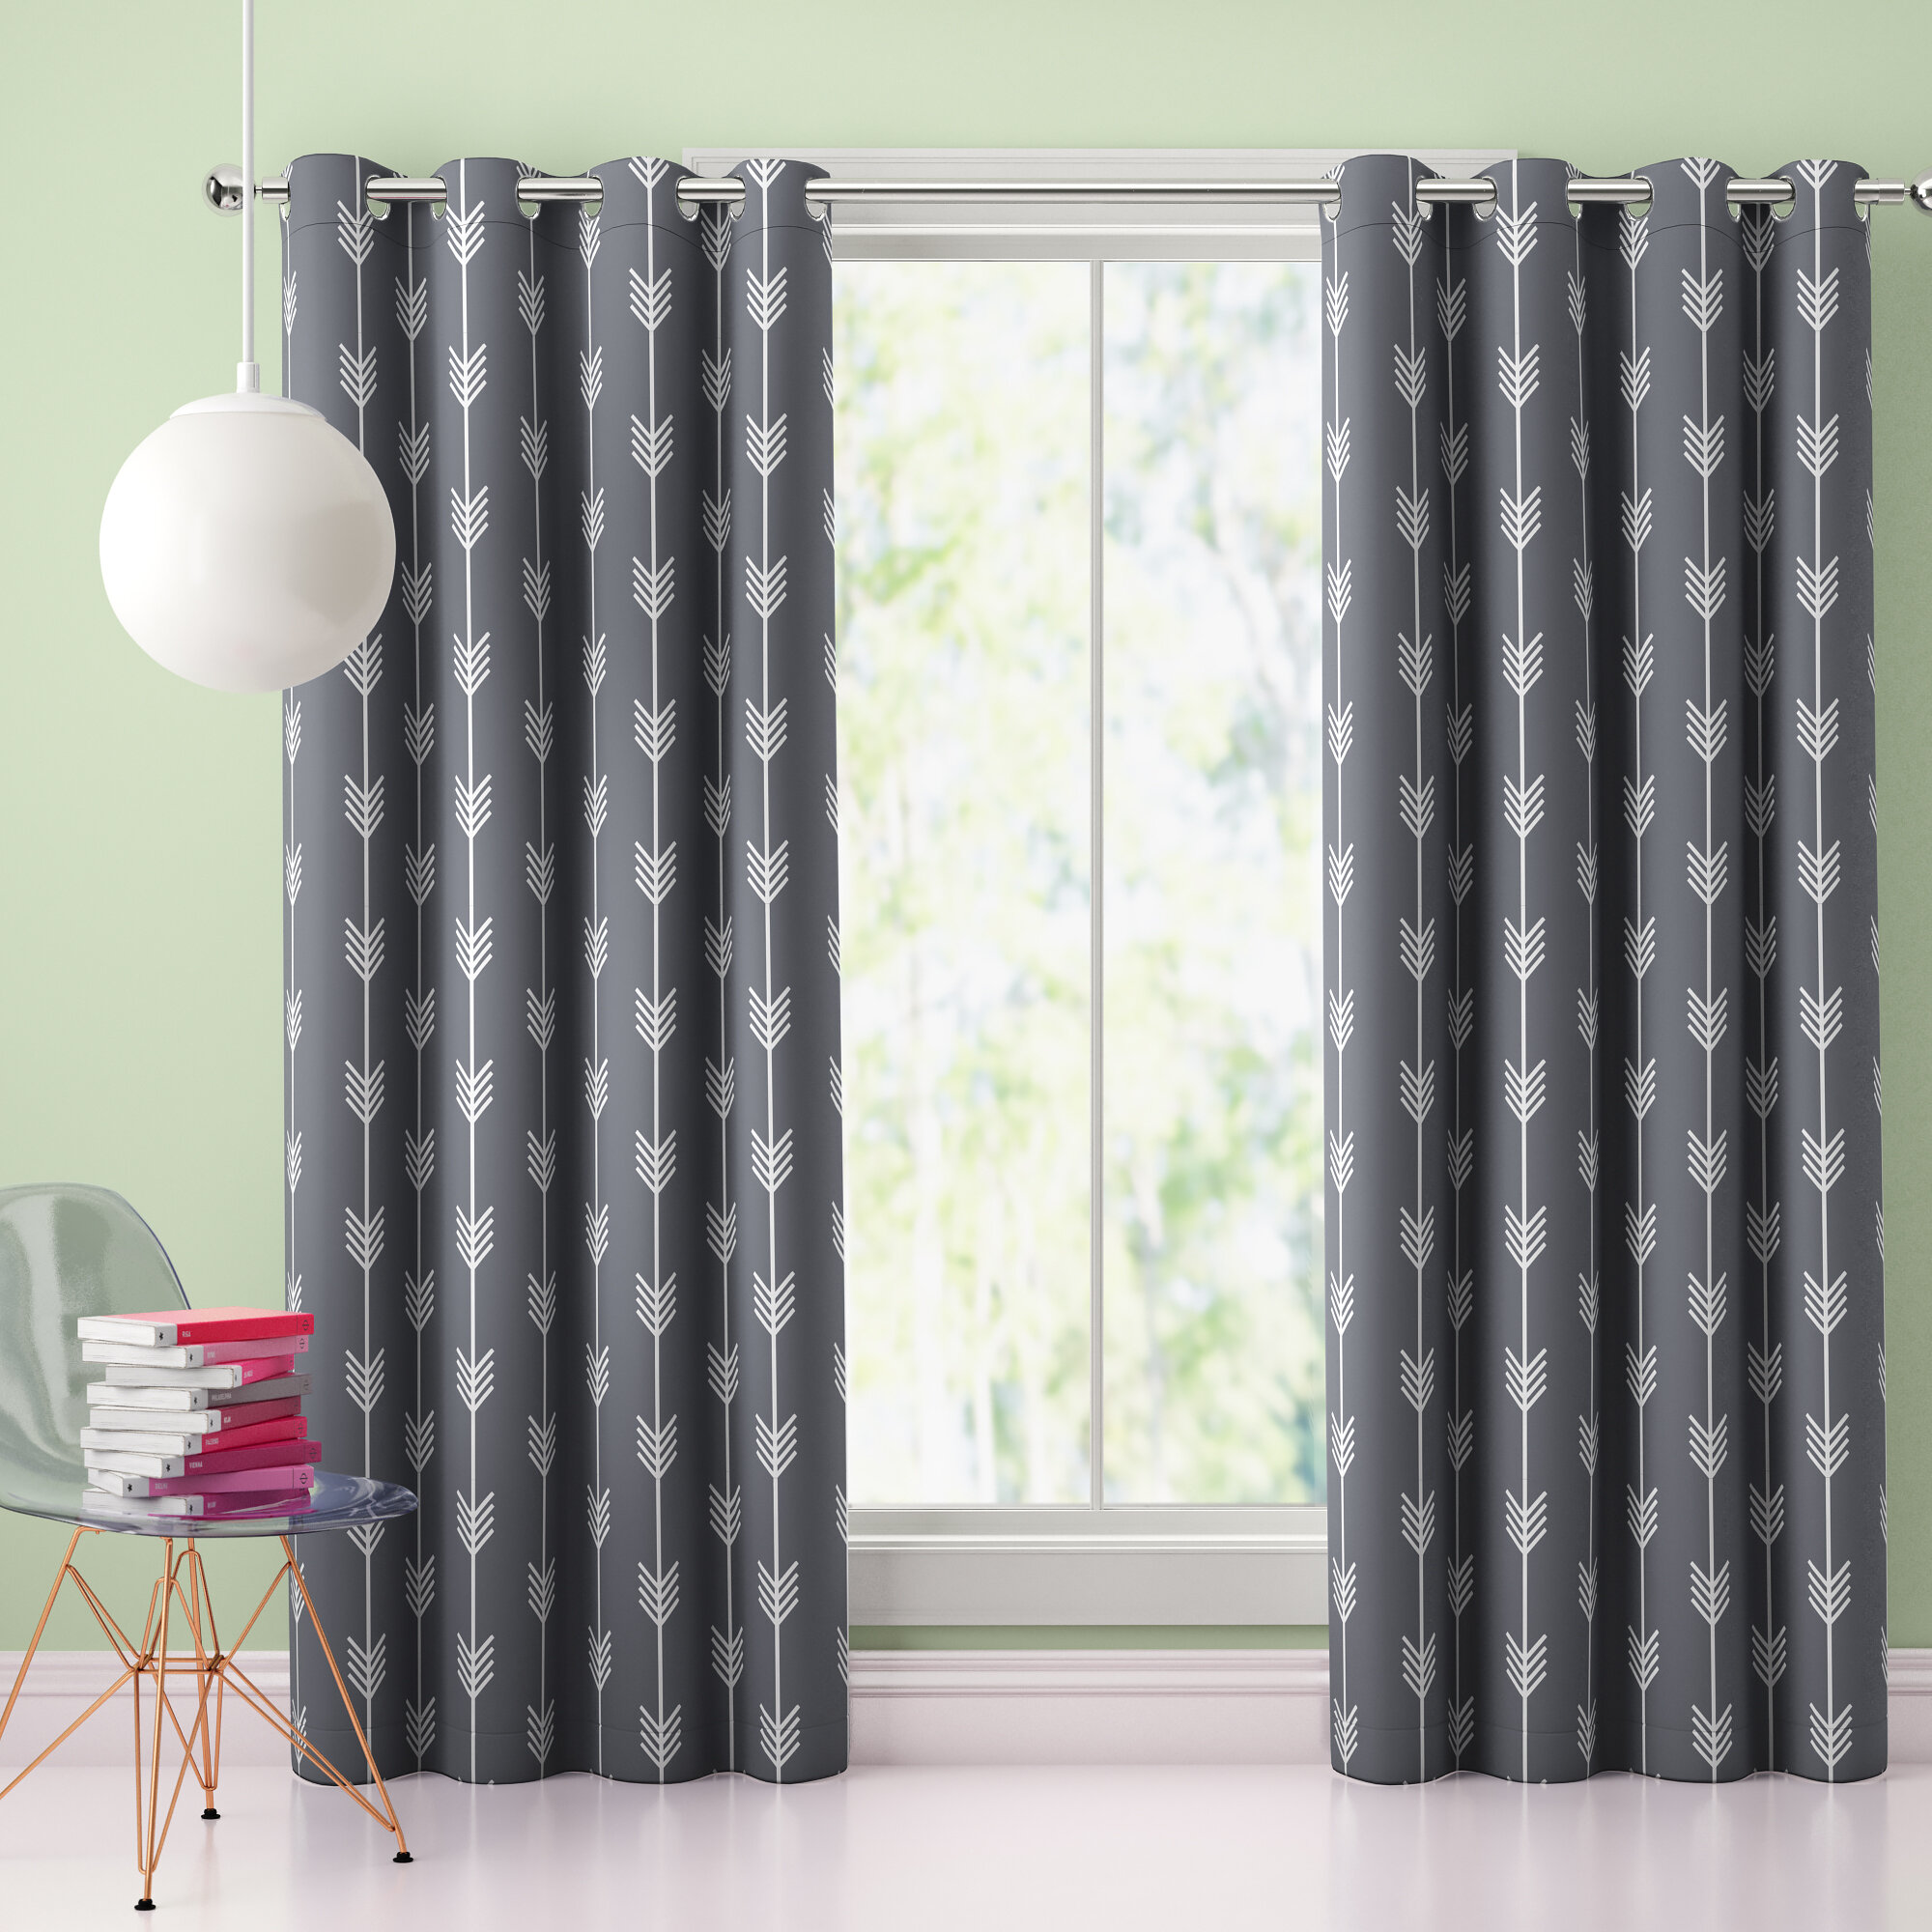 dark chocolate color Window//Kitchen office kids daycare schools Curtain 32L curtain basement 32 L 2 panels//Tiers Solid light blue cafe style Laundry Bath